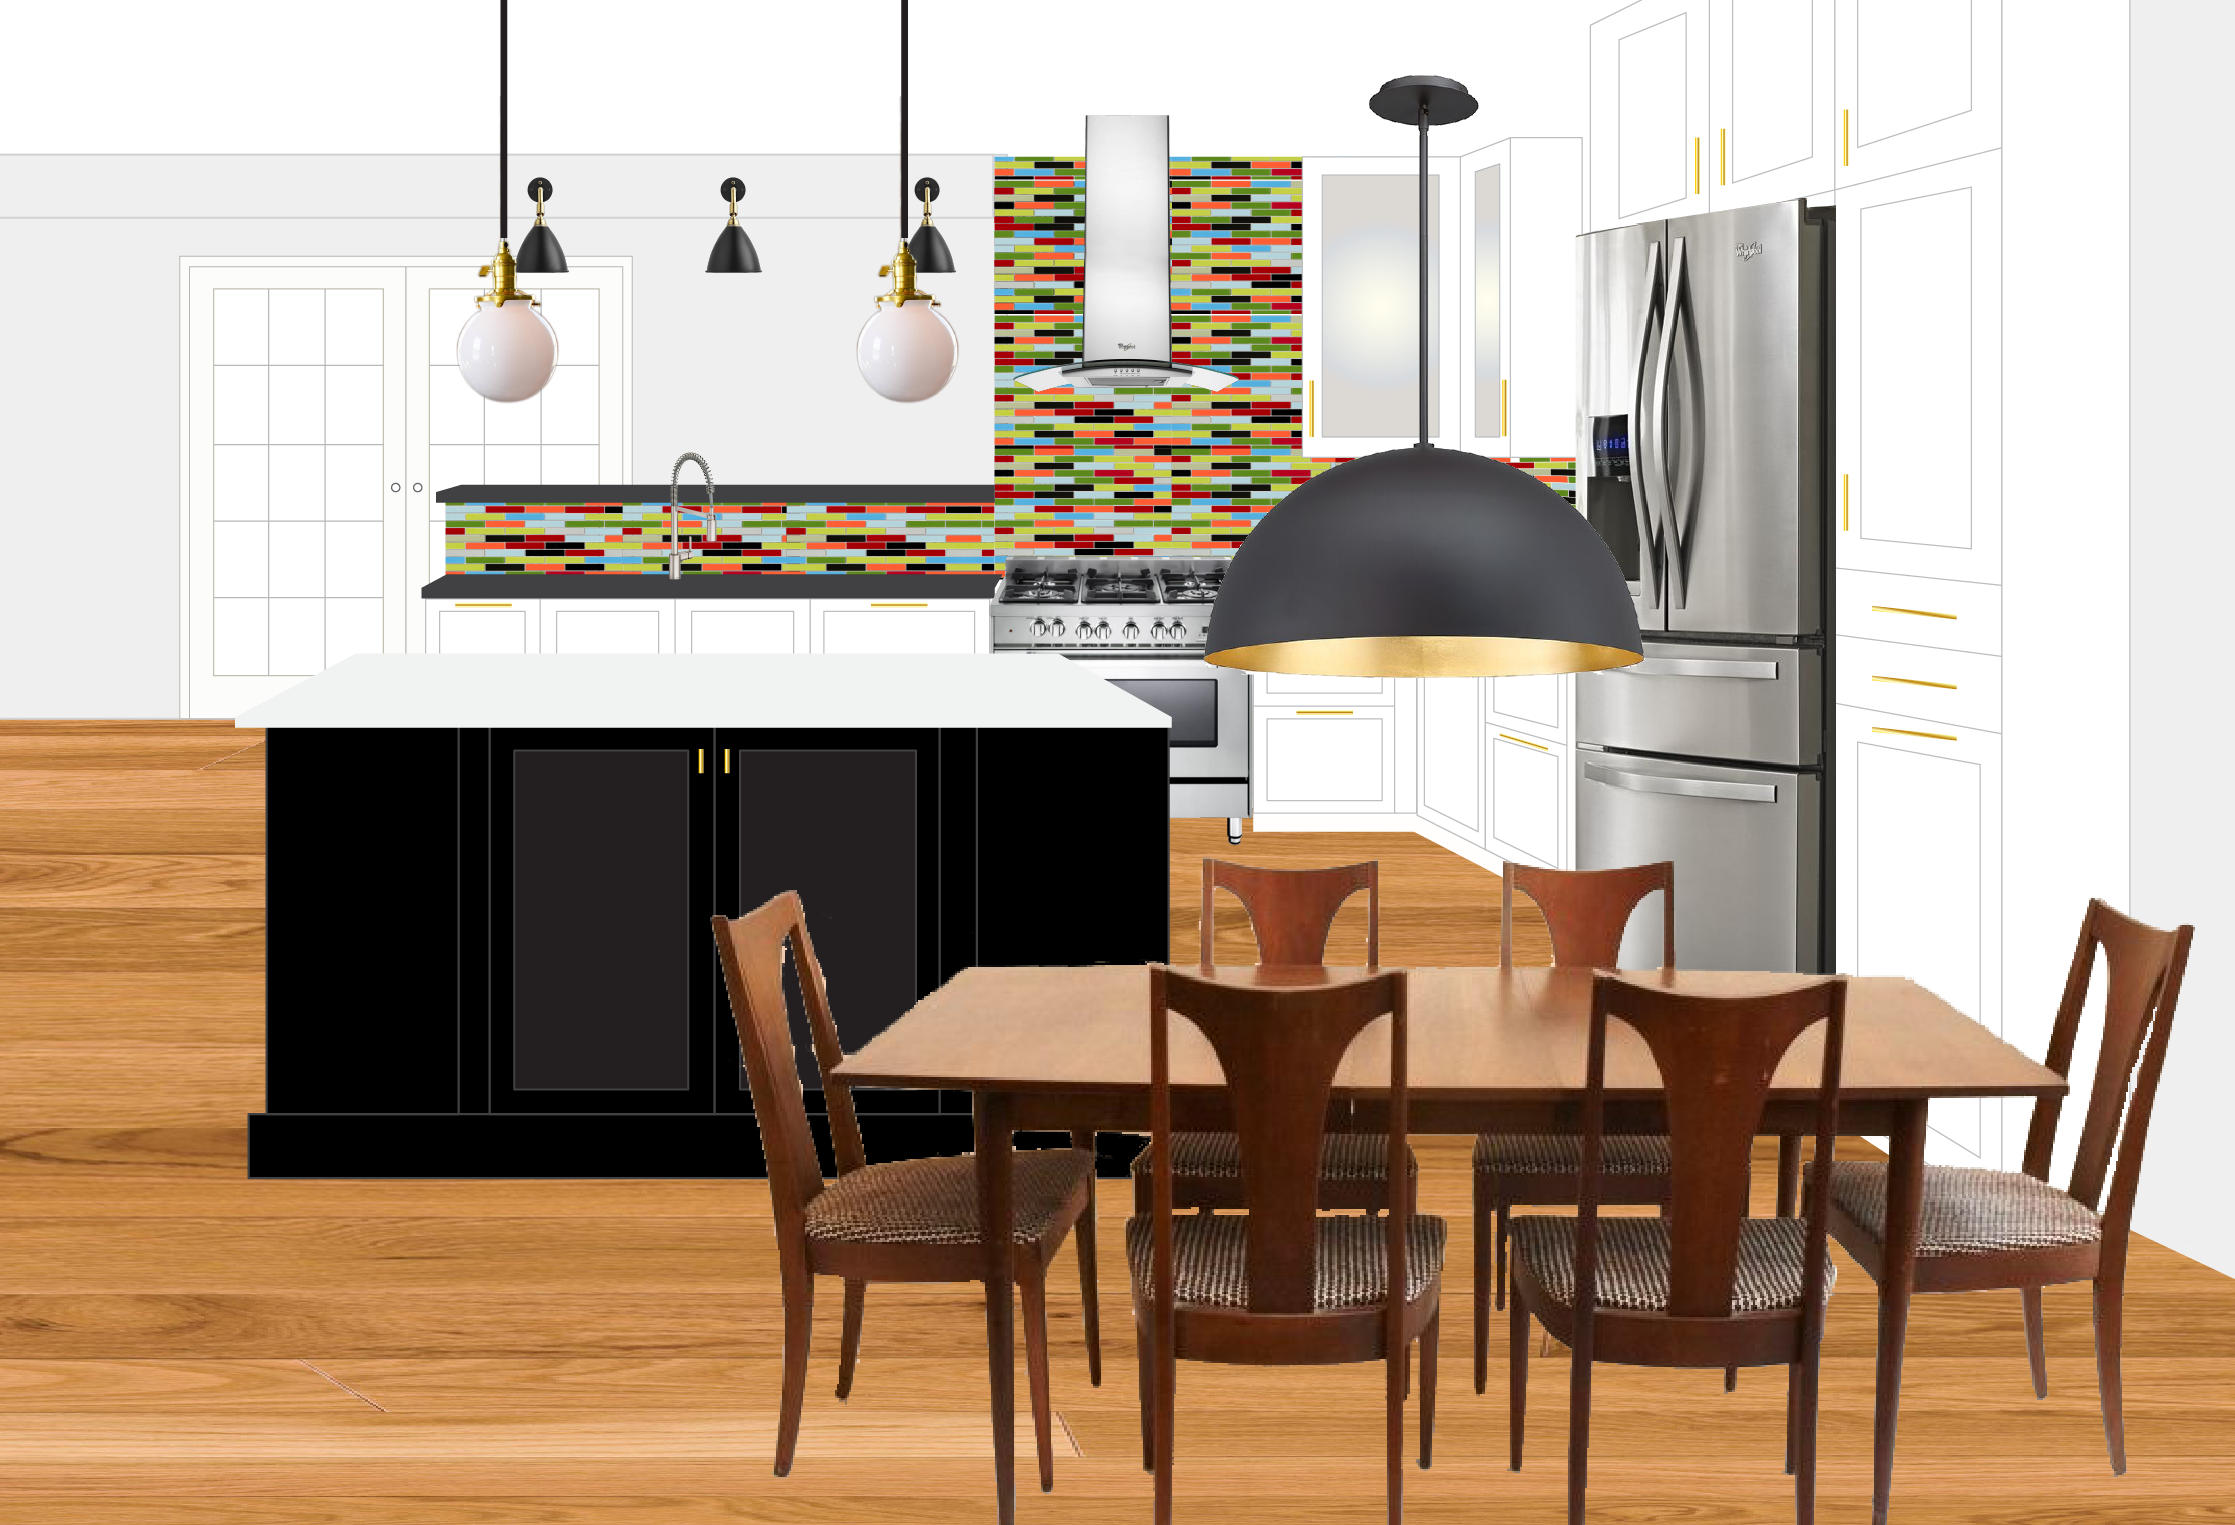 A mock-up for a kitchen renovation in an old mill house. The owners love two things (well, probably many more than two, but for the purpose of my web site, two): color and cooking! I think we've got that covered. The french doors beyond open to a large deck for fun and merriment!